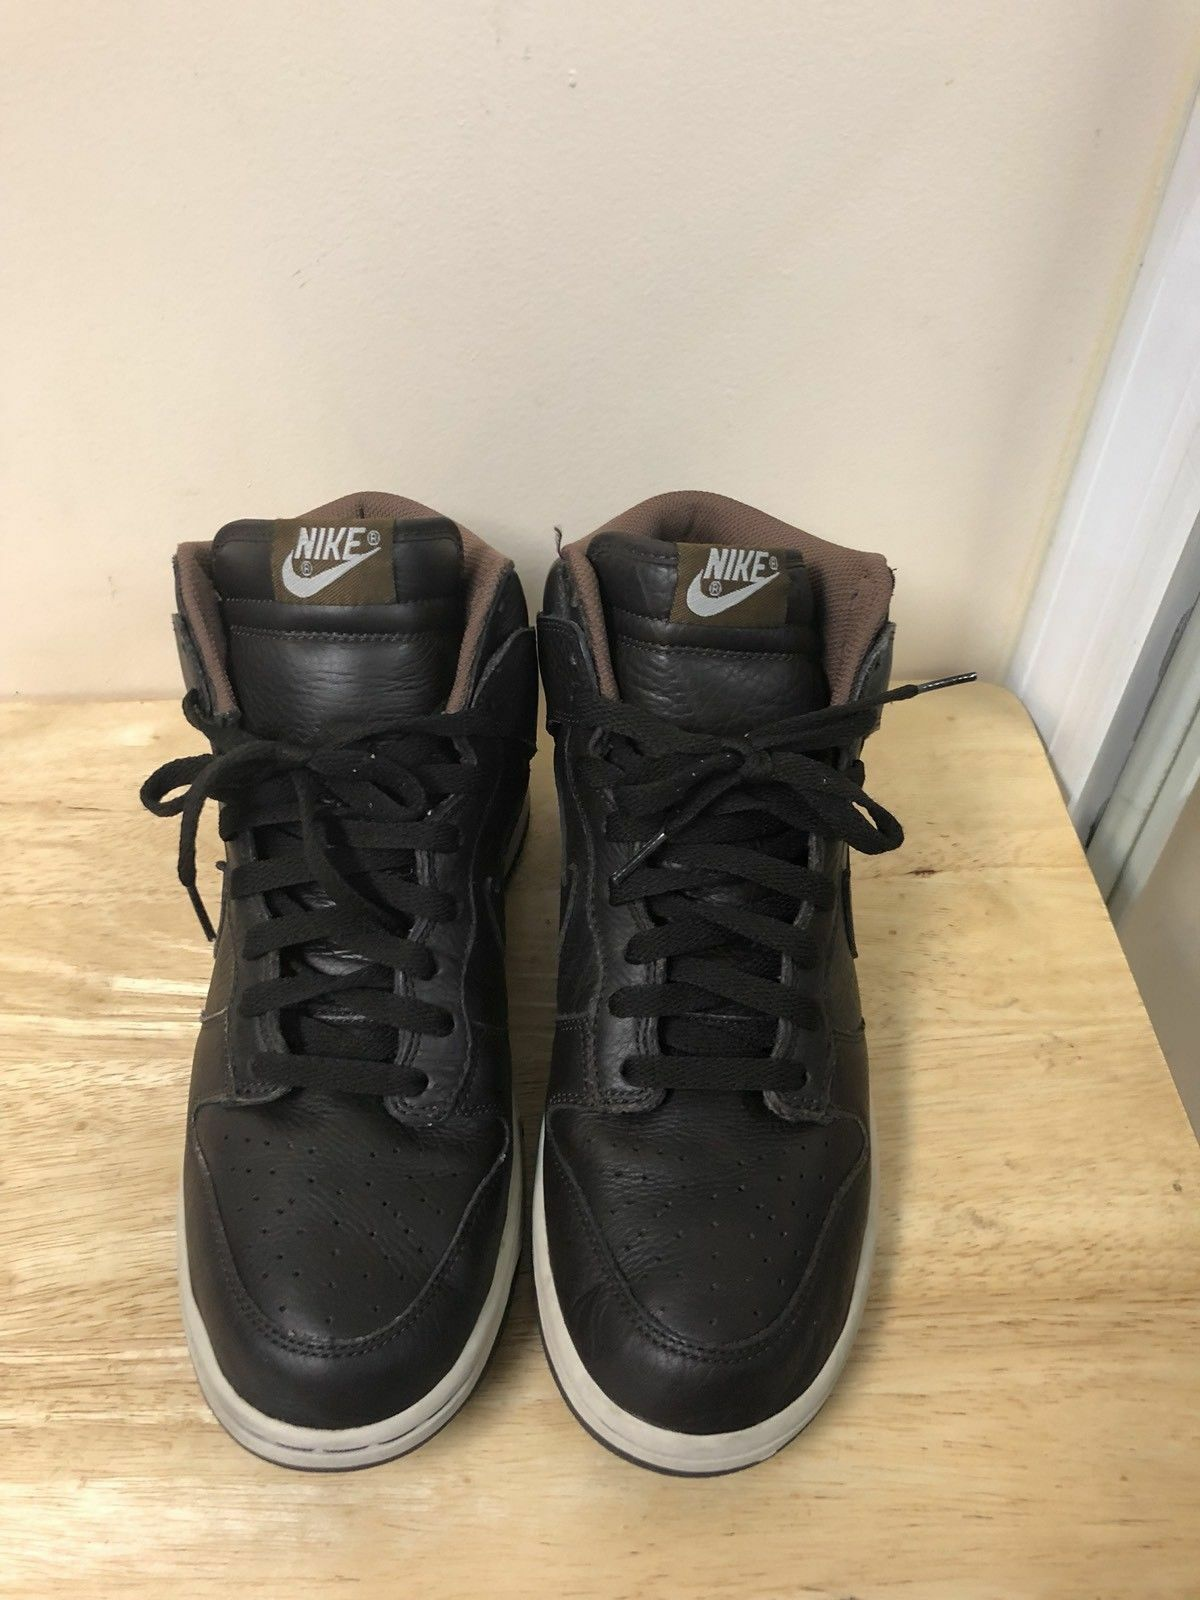 Nike Dunk High Leather Brown Men Size 10.5 shoes Sneakers 312786-222